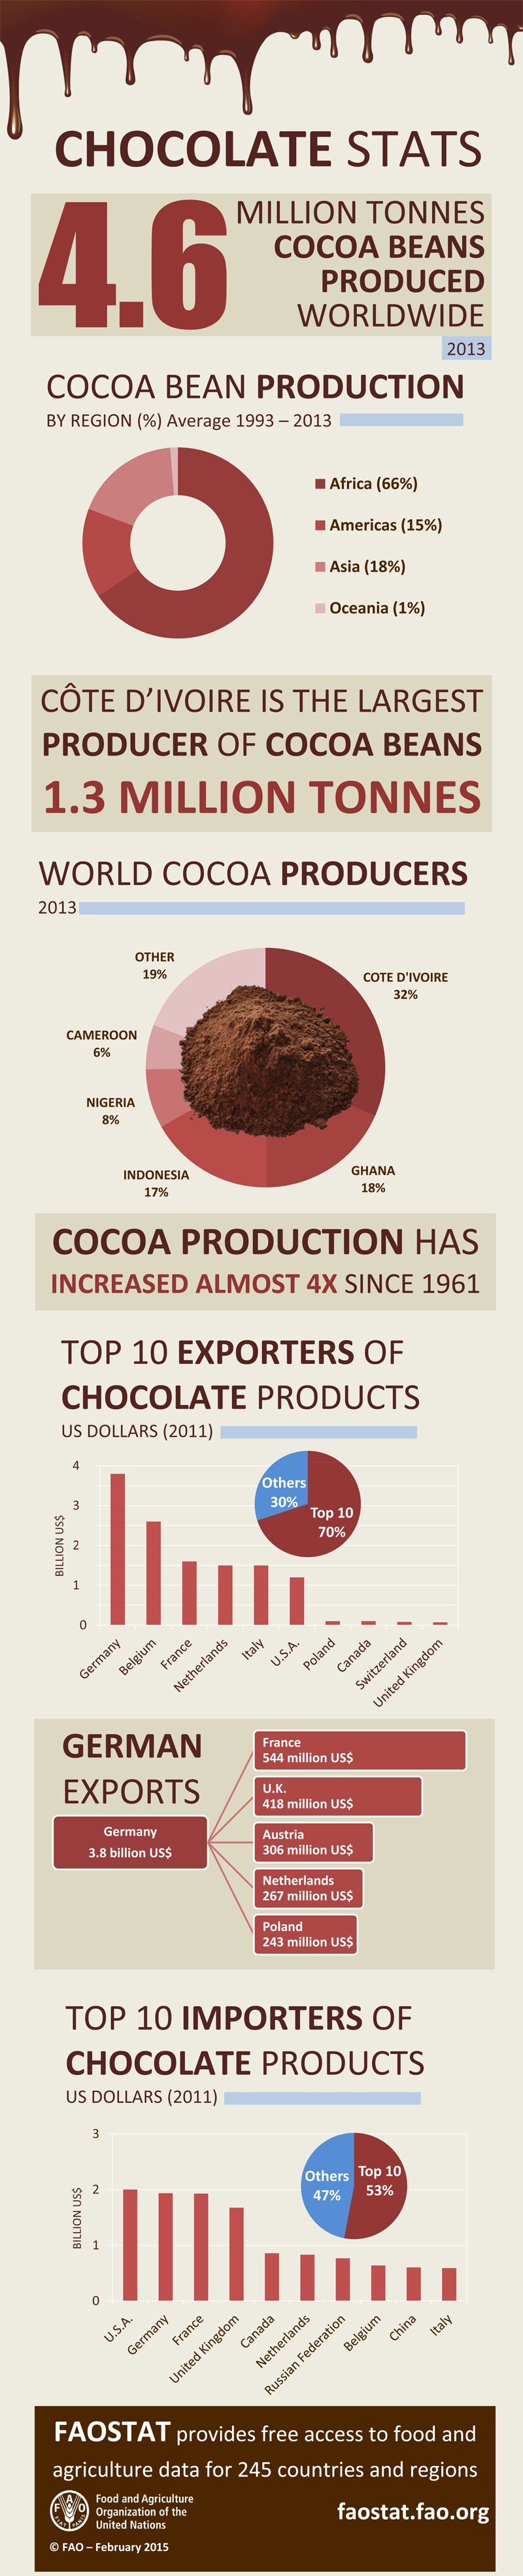 how globalisation influences the chocolate industry Globalization has had a profound impact on numerous fields of business throughout the world the coffee industry is one that has felt the impact of globalization, both directly and indirectly.